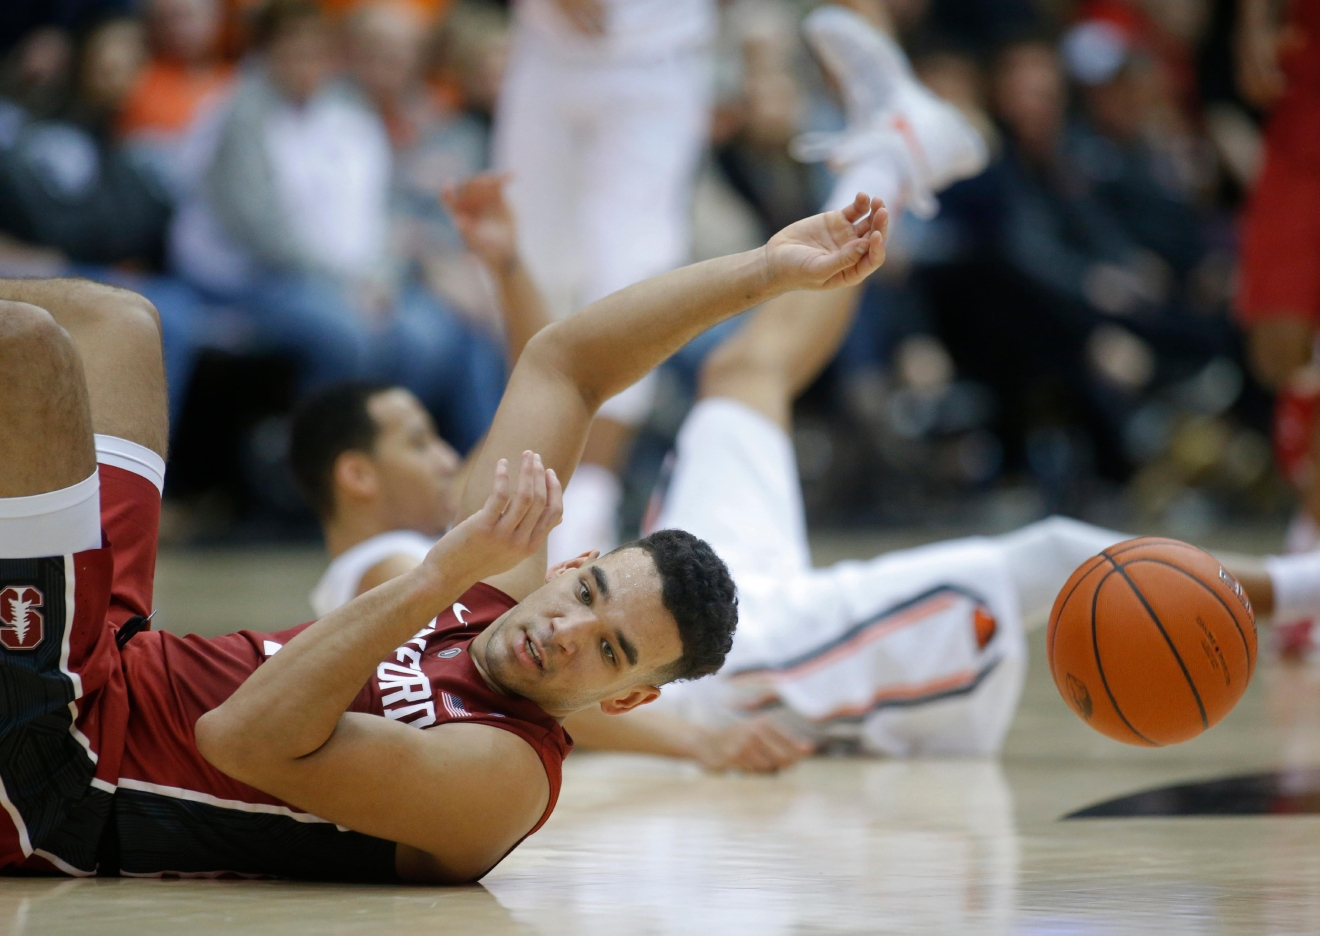 Stanford's Dorian Pickens hits the floor after being fouled while going after a loose ball during the second half of the team's NCAA college basketball game against Oregon State, in Corvallis, Ore., Thursday, Jan. 19, 2017. Stanford won 62-46. (AP Photo/Timothy J. Gonzalez)